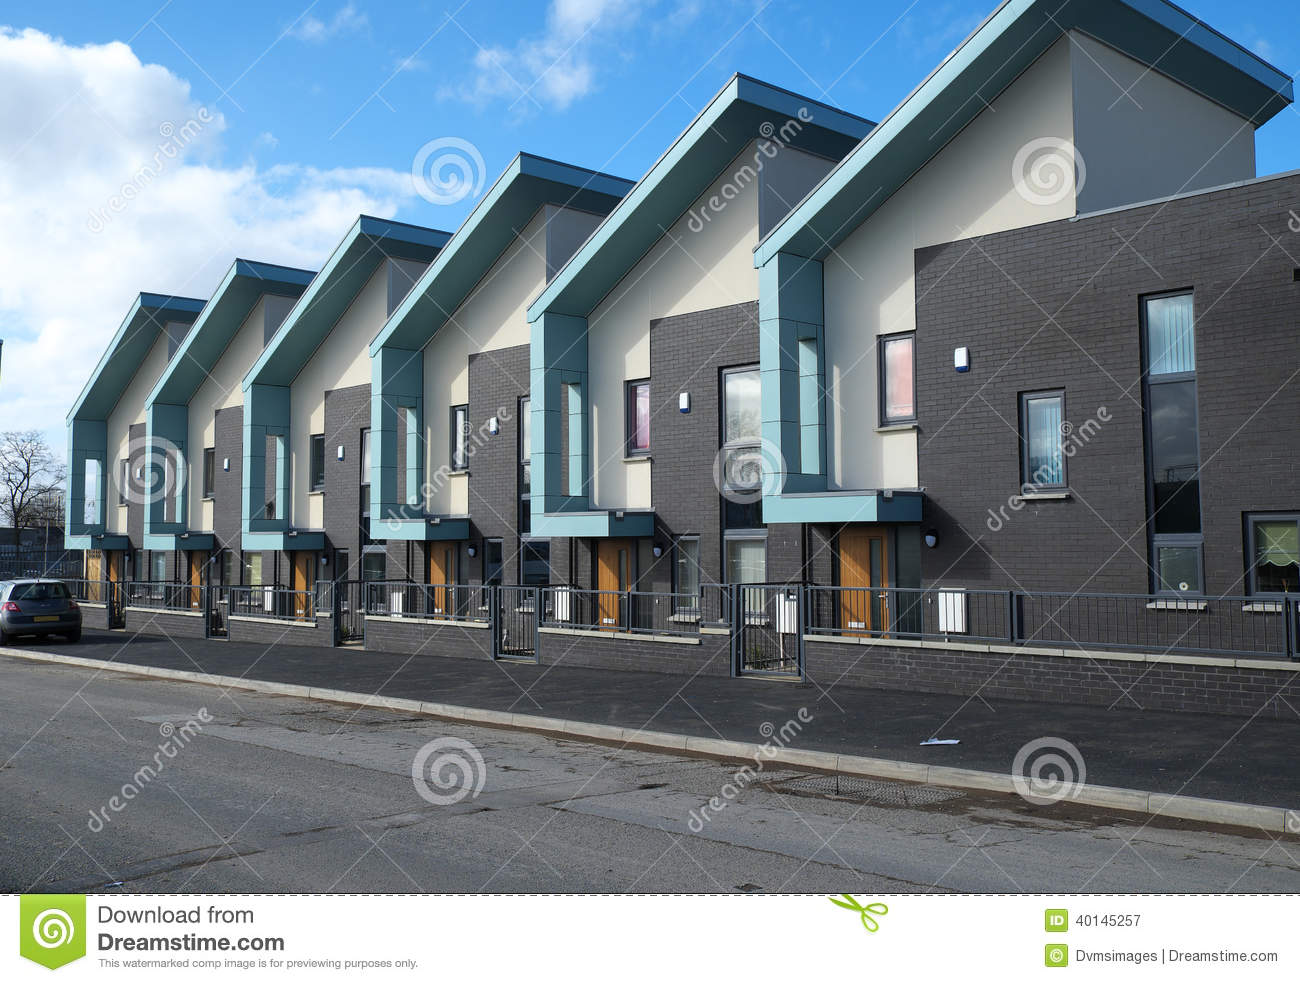 ow Of Modern Houses Stock Photo - Image: 40145257 - ^